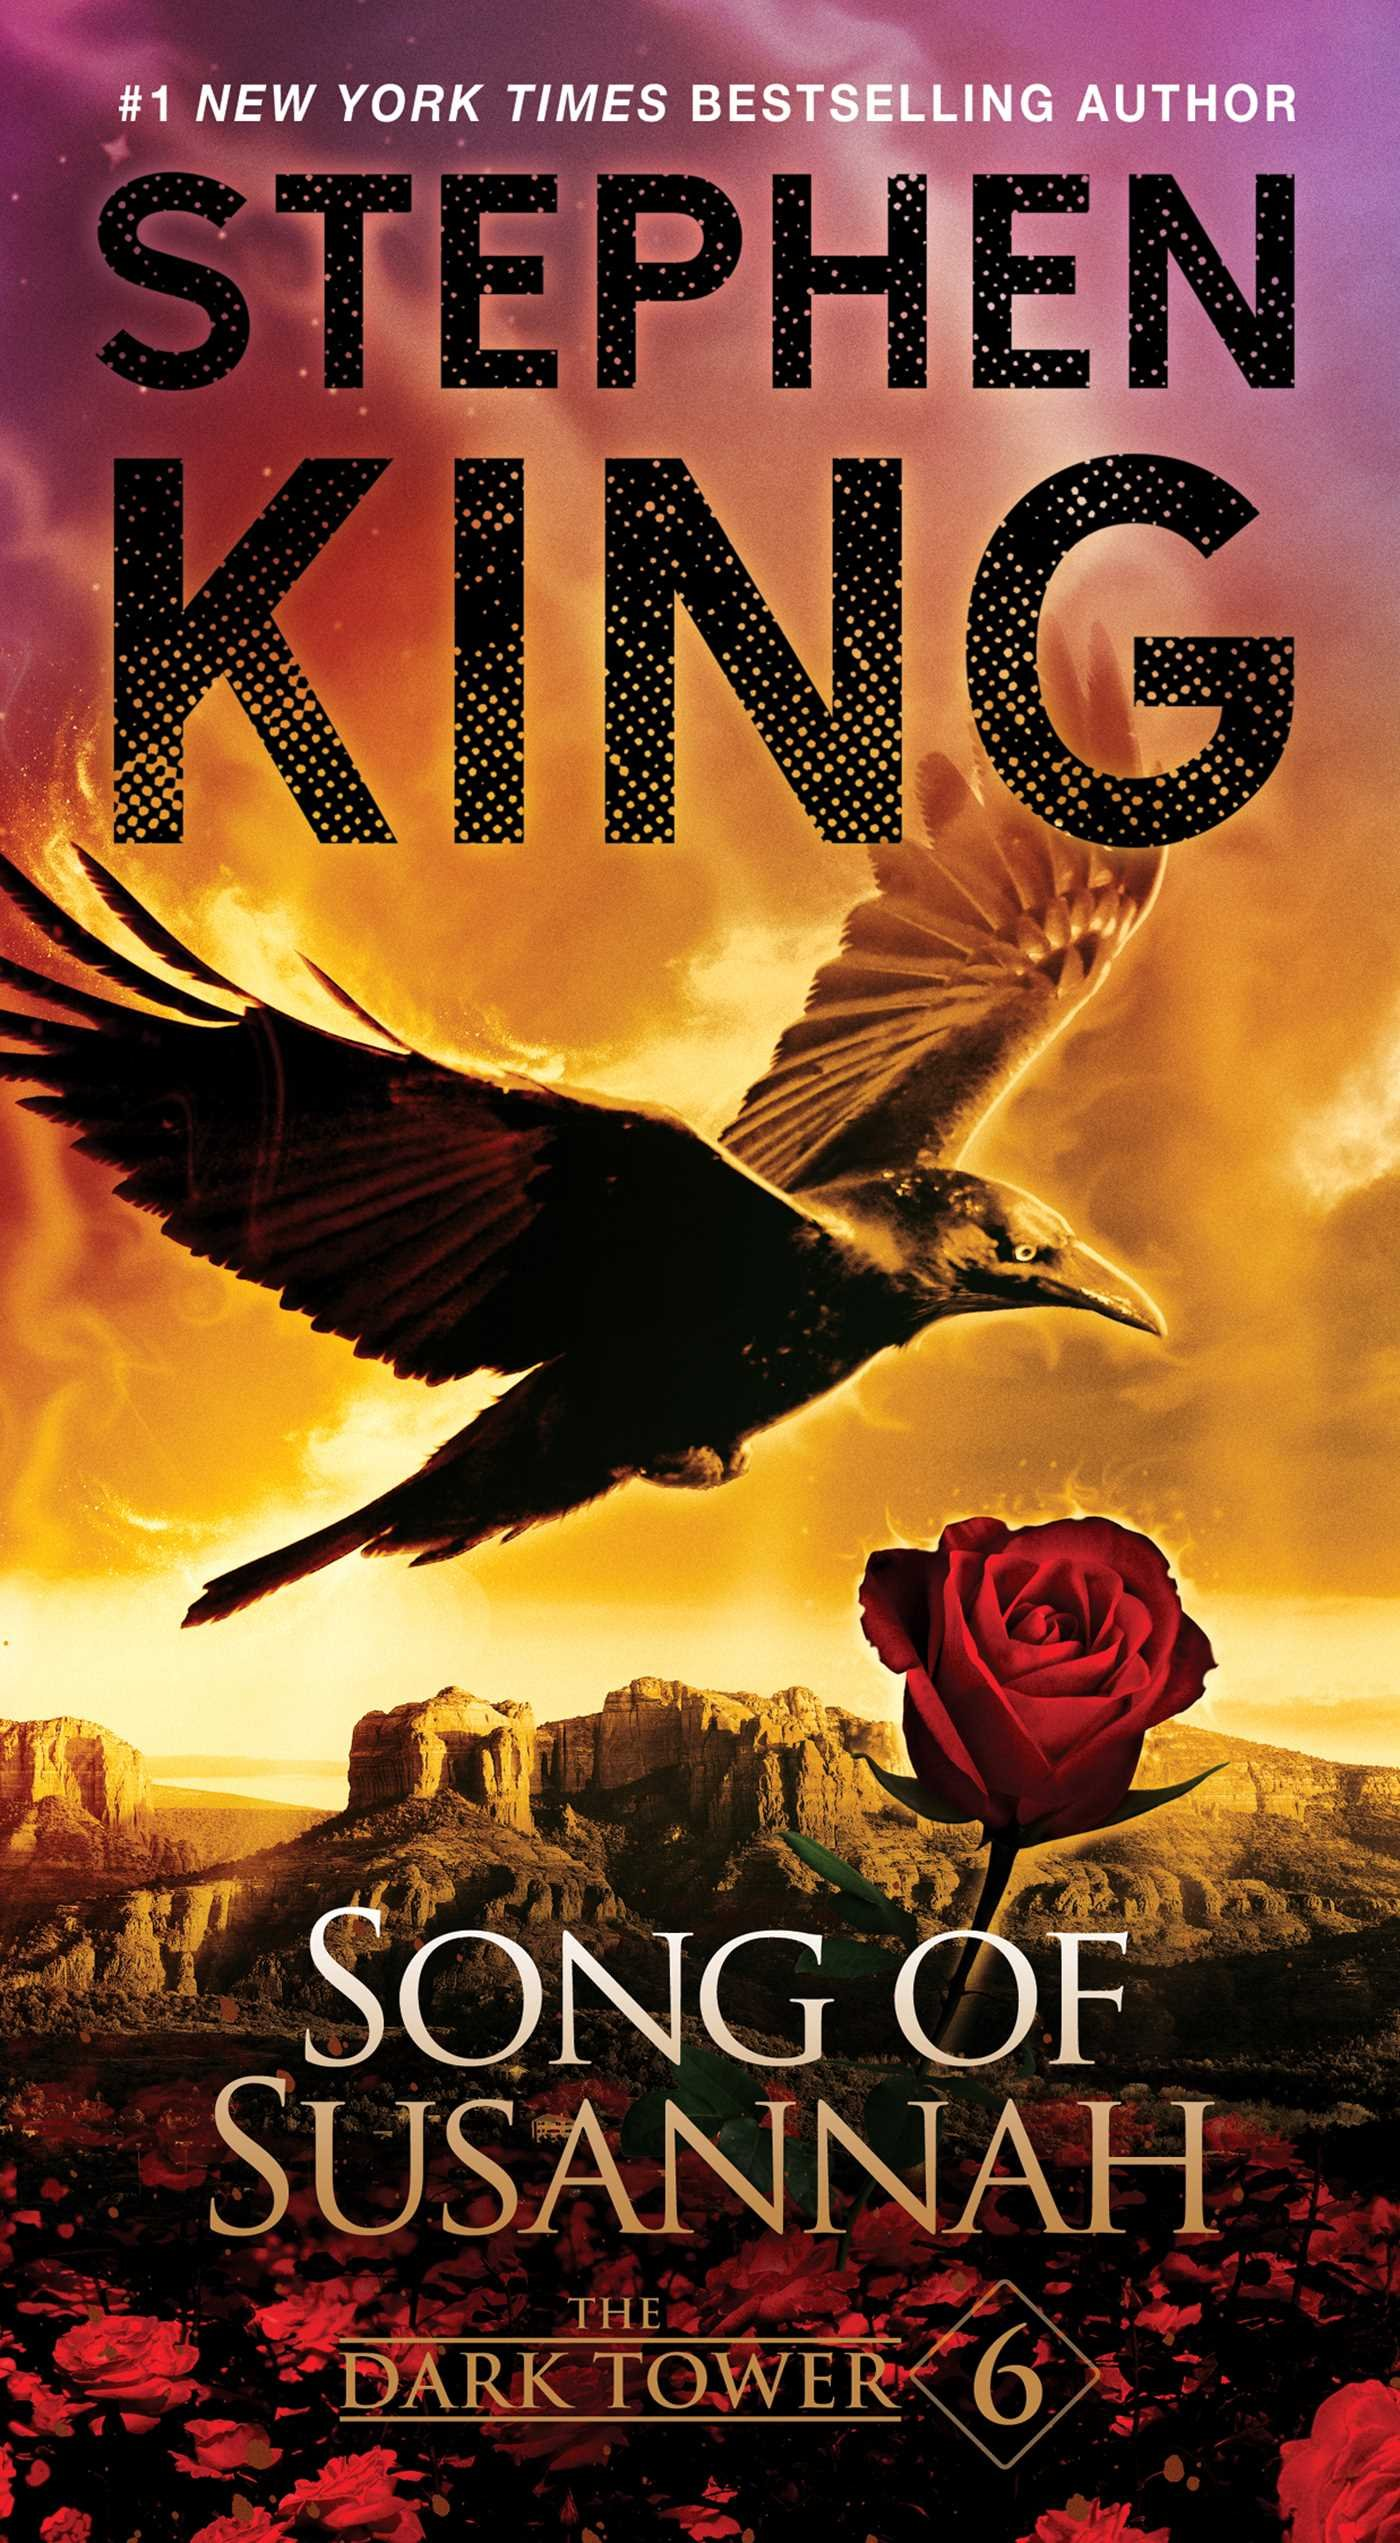 Amazon the dark tower vi song of susannah the dark tower amazon the dark tower vi song of susannah the dark tower book 6 8580001066042 stephen king darrel anderson books stopboris Gallery